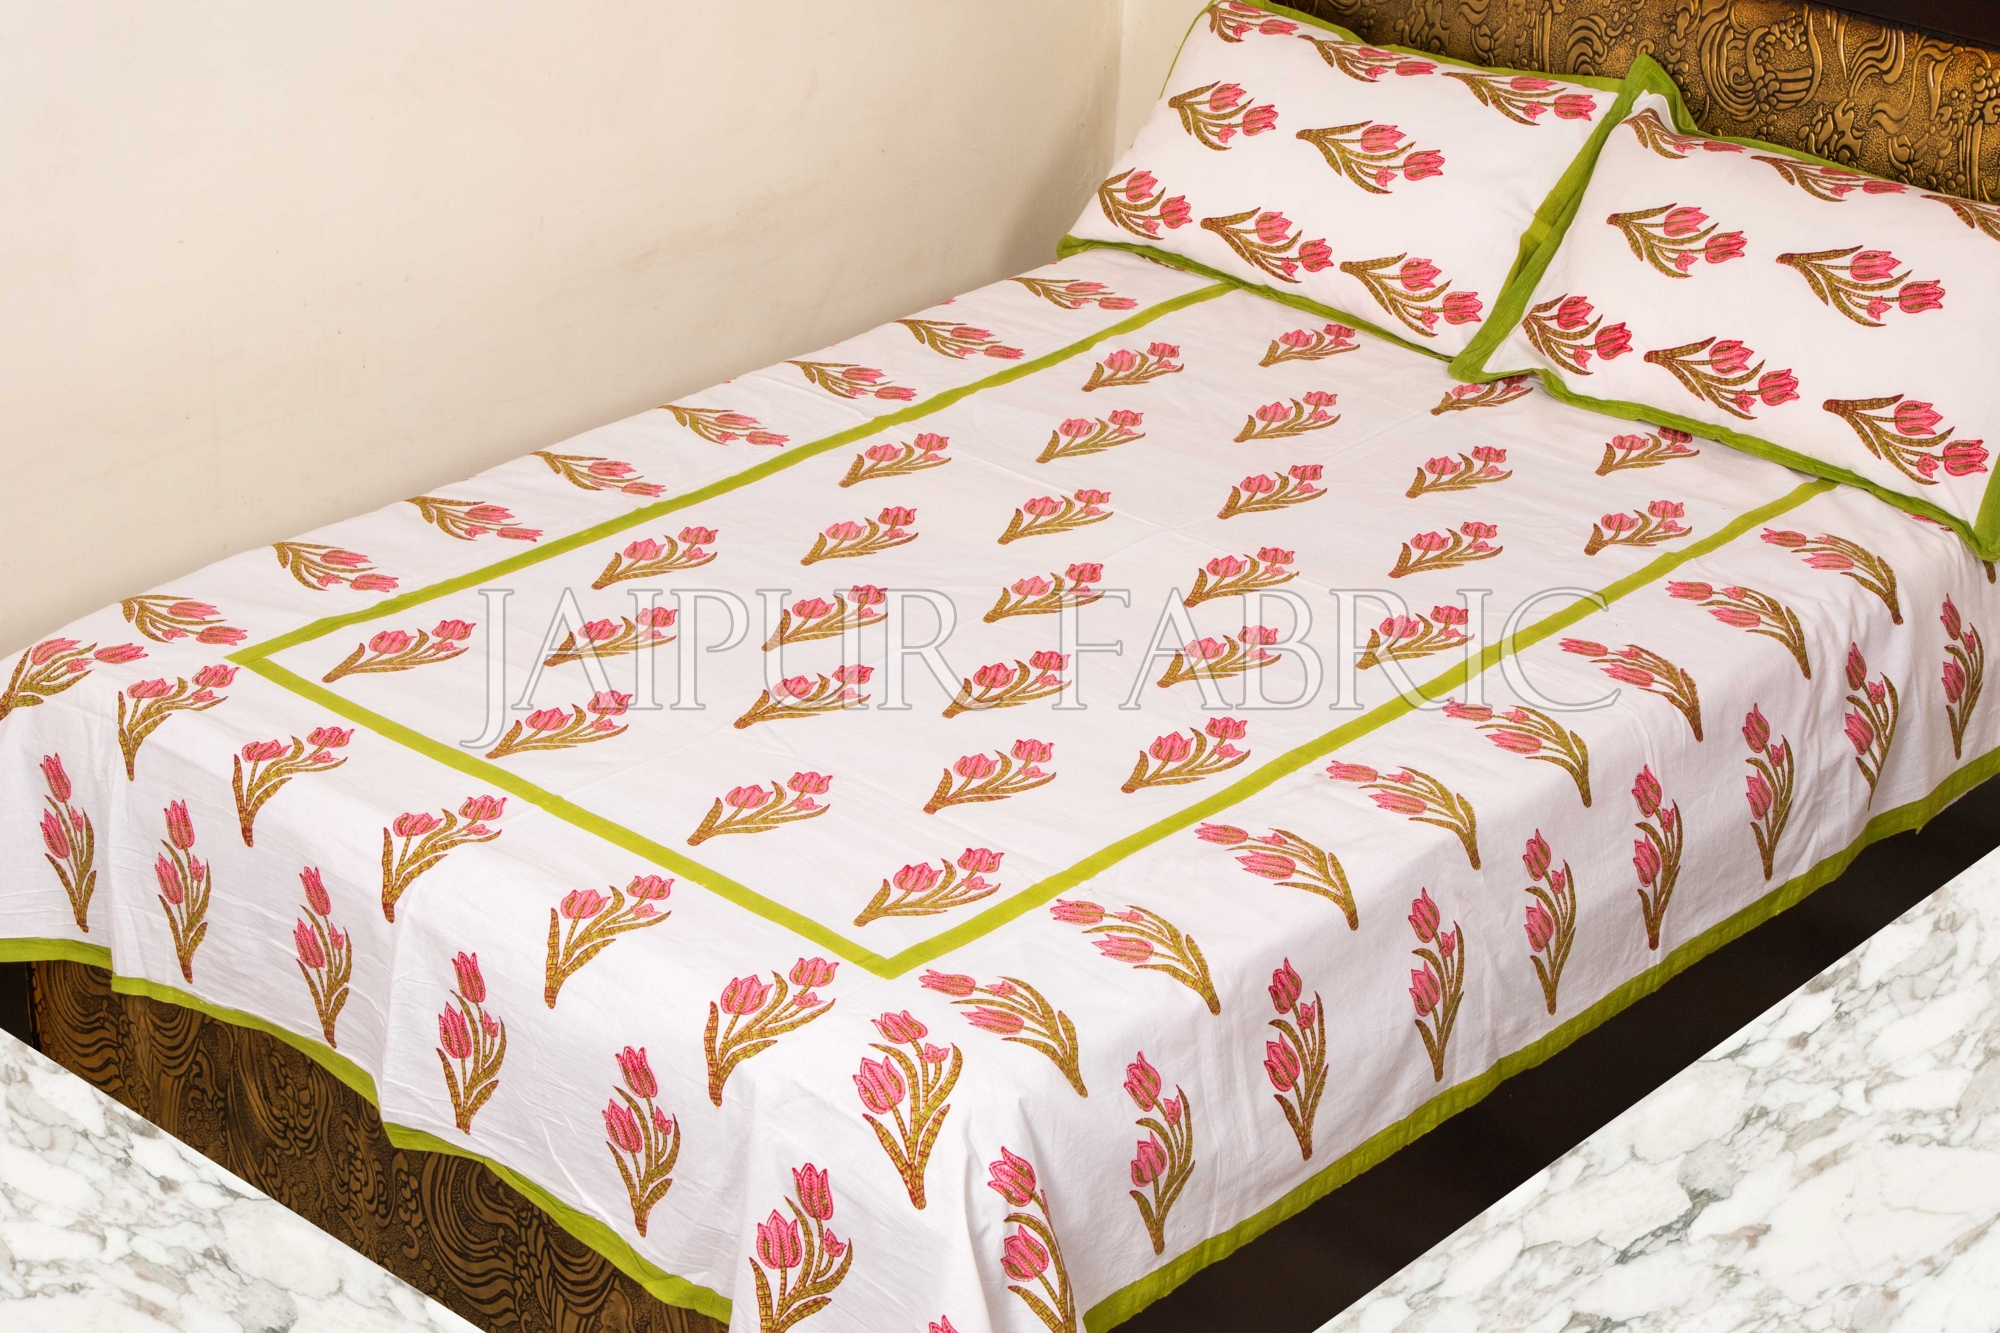 Green Border White Base Pink Flower Handmade Block Print Single Bed Sheet with Two Pillow Covers